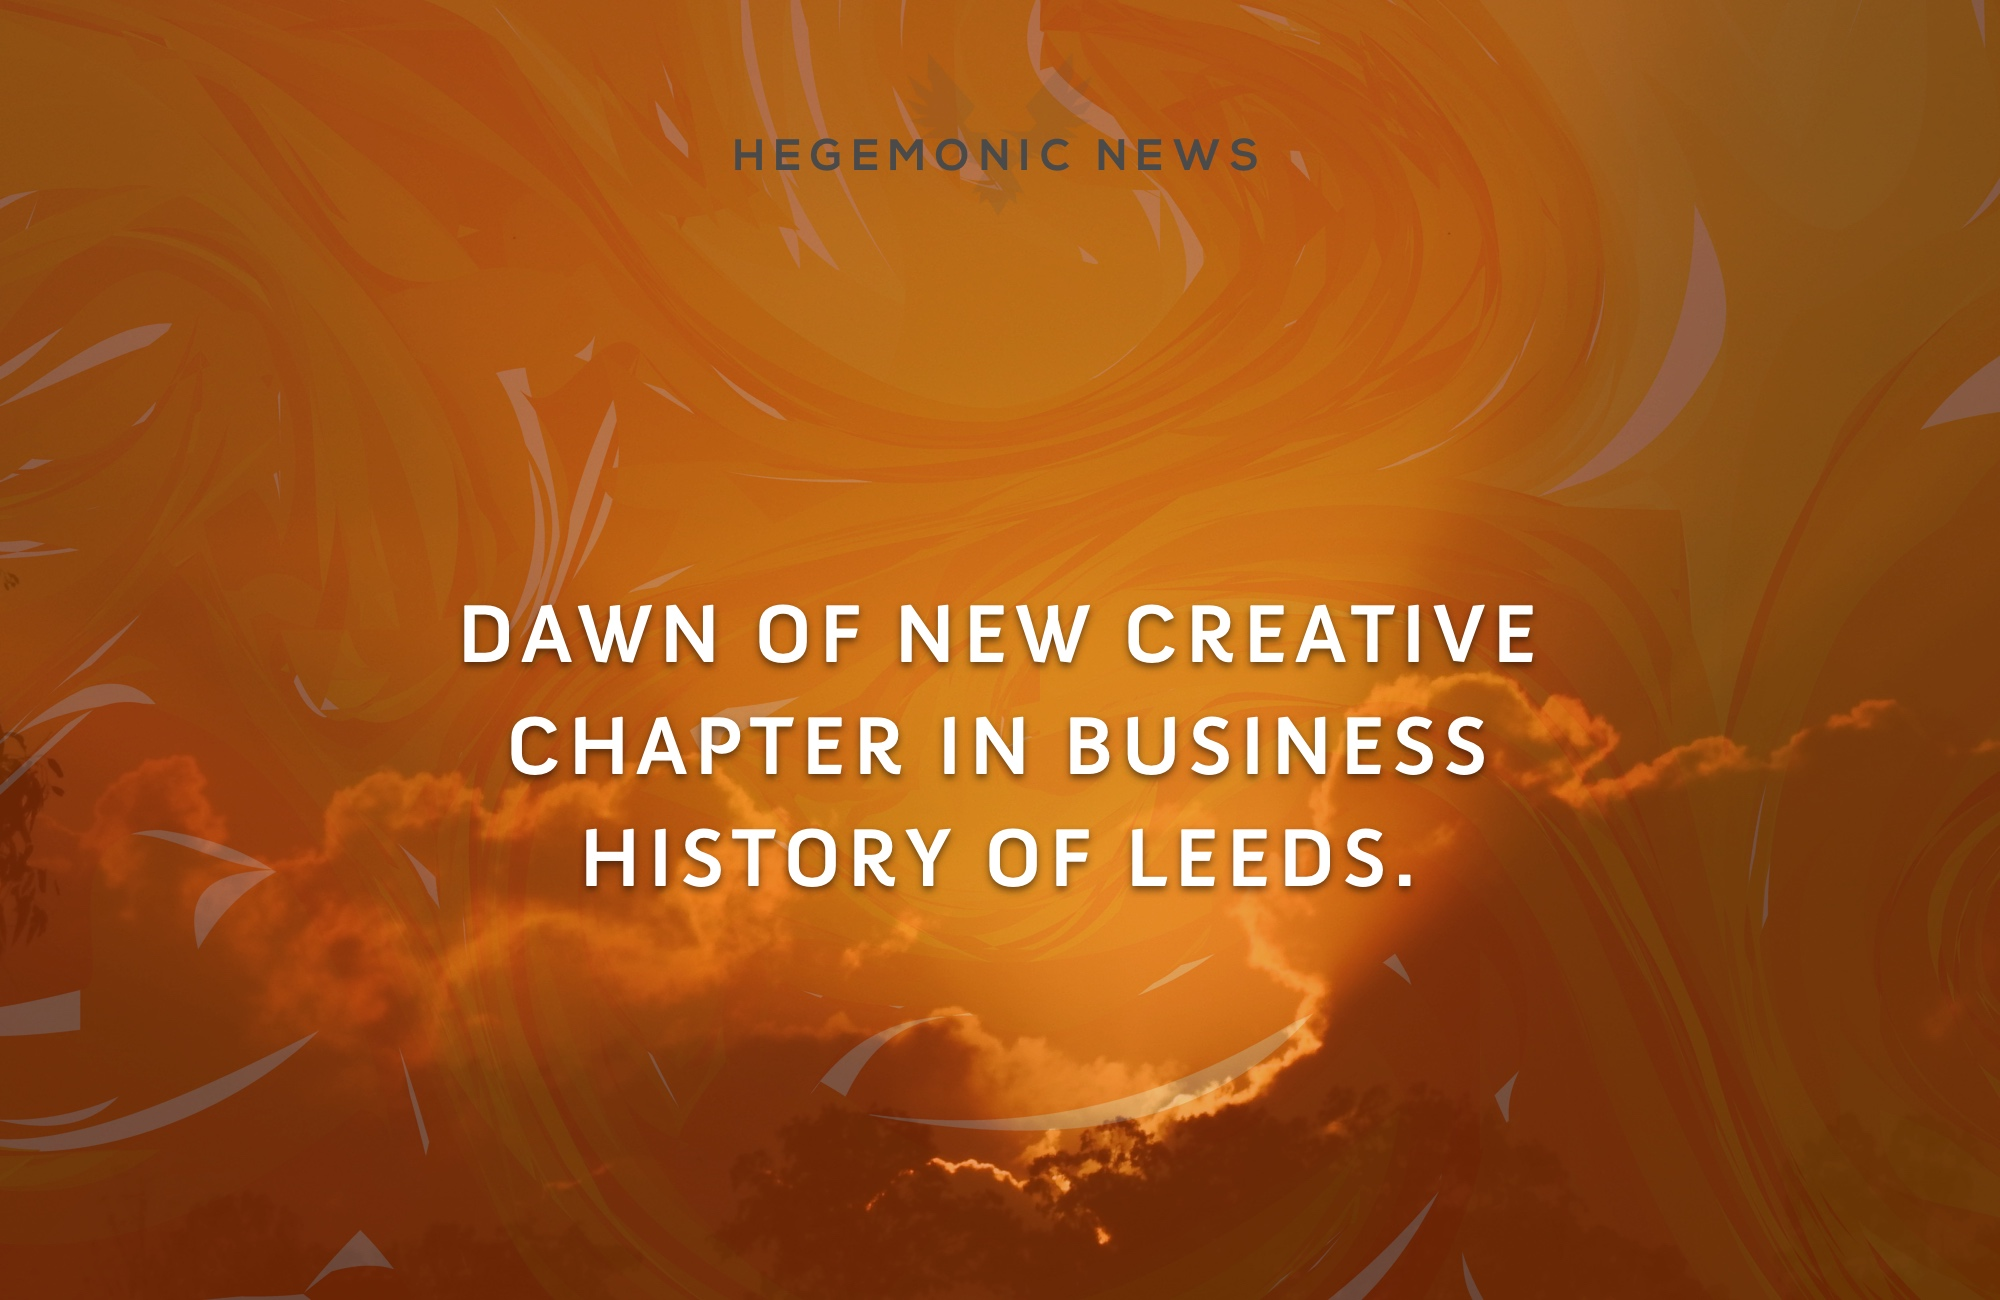 Hegemonic Enterprises declares dawn of new creative chapter in business history of Leeds.